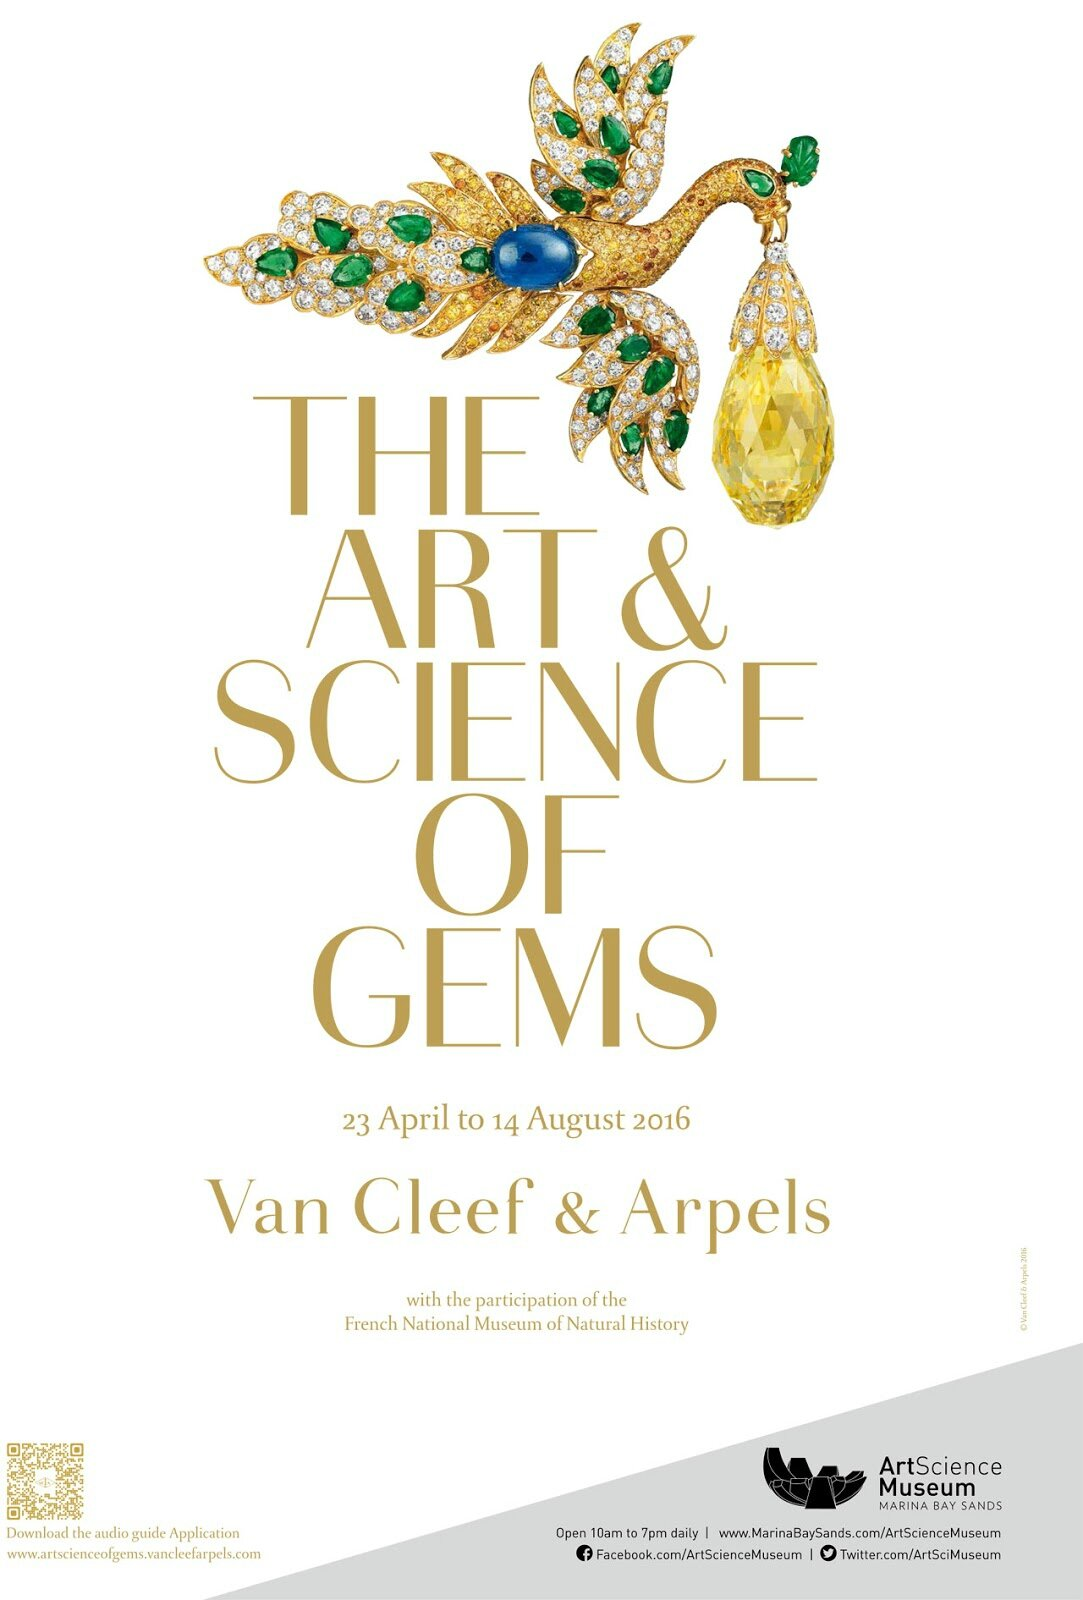 Van Cleef & Arpels: The Art and Science of Gems at ArtScience Museum, Singapore